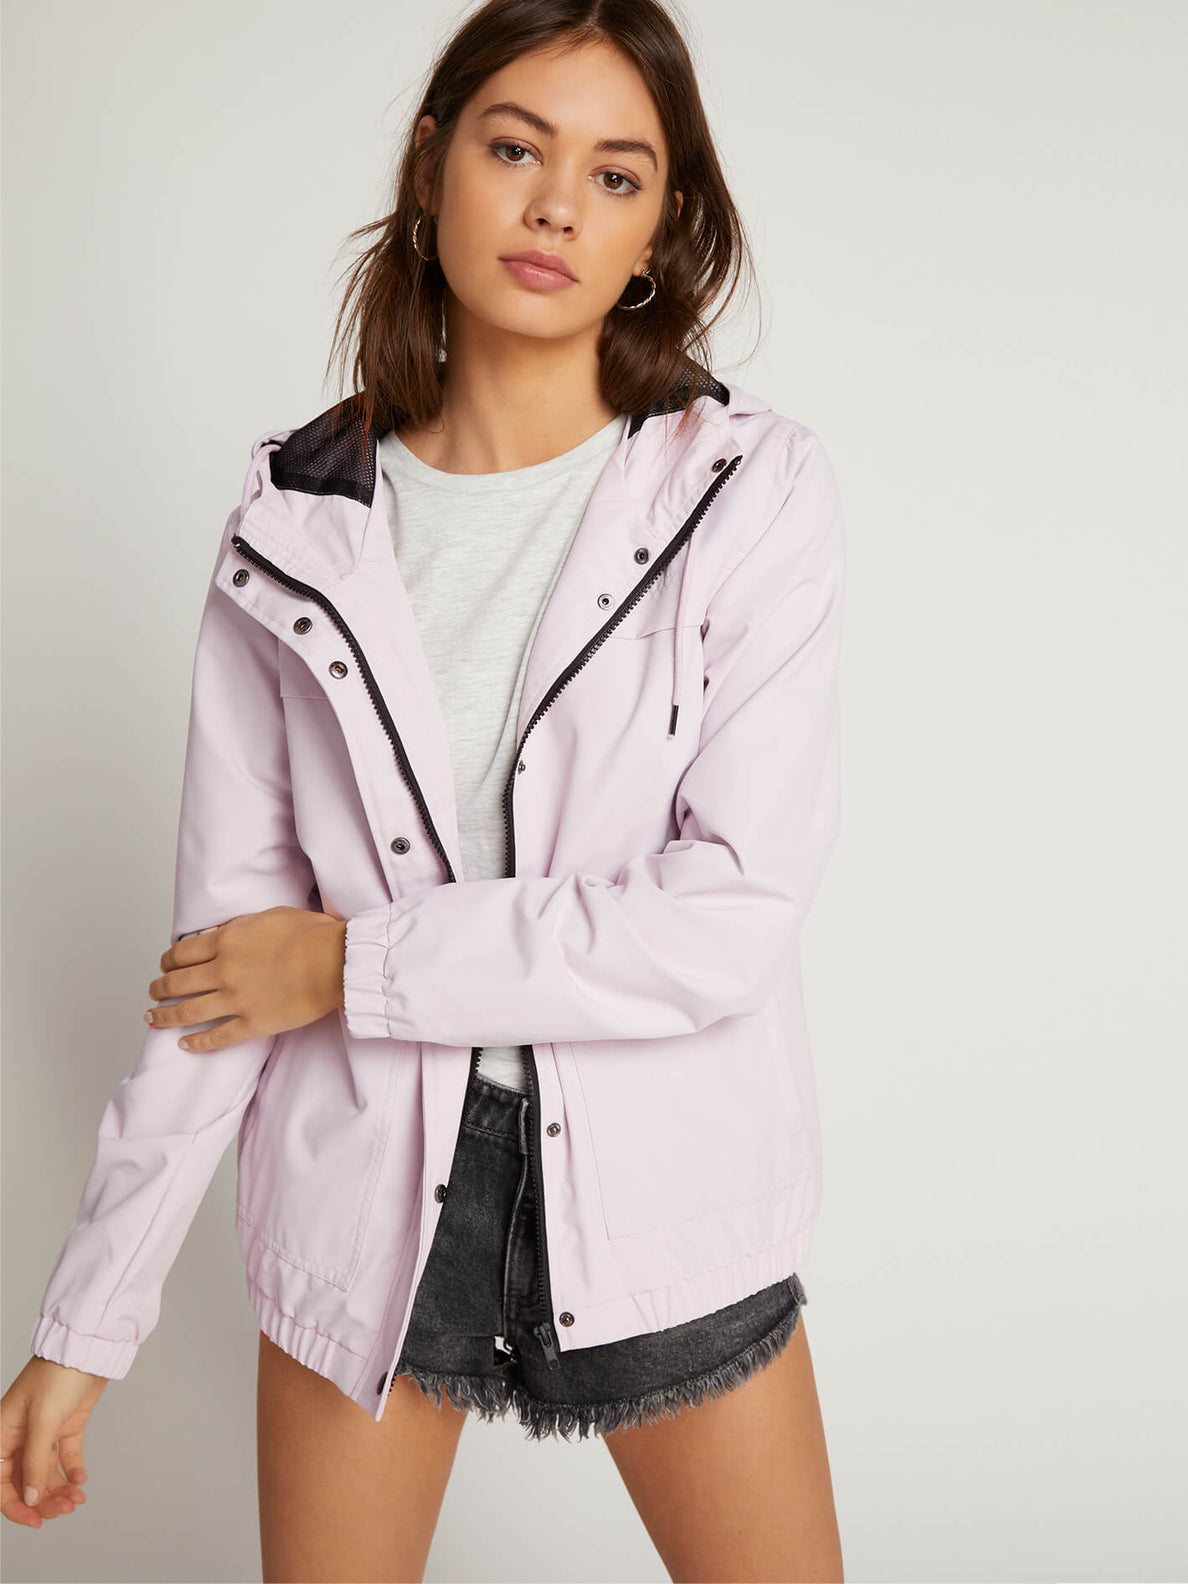 Enemy Stone Jacket In Light Purple, Second Alternate View